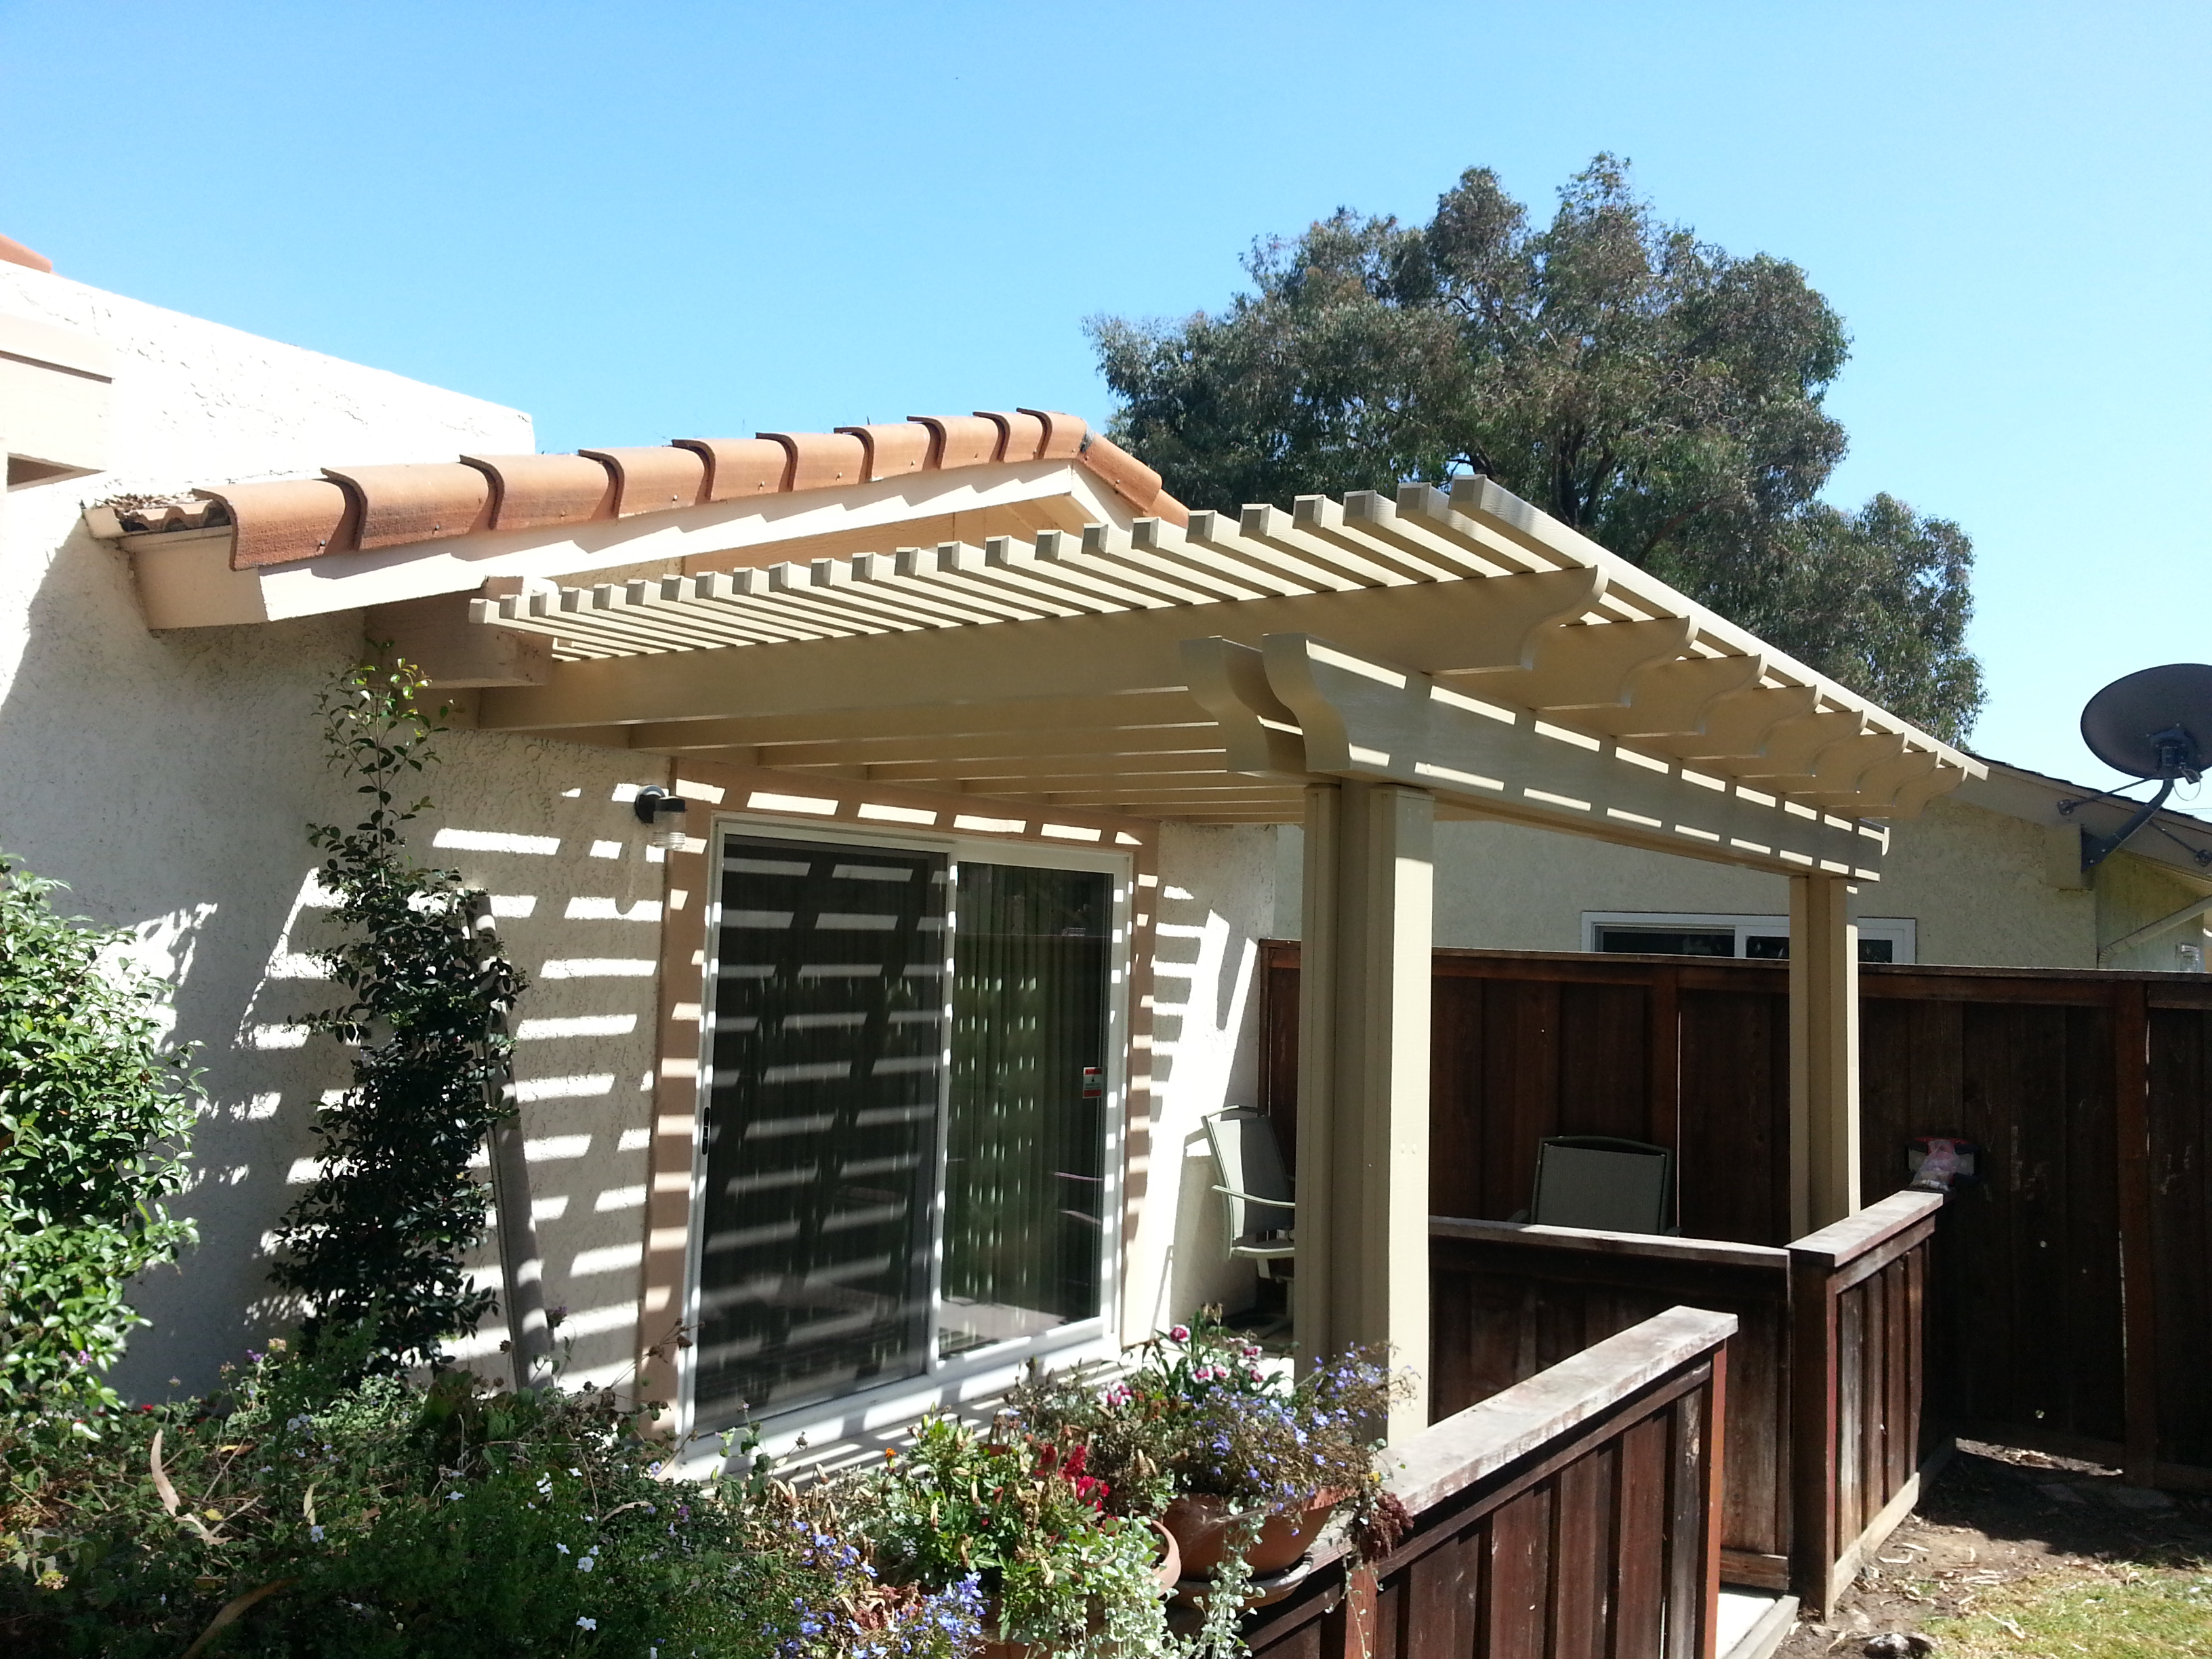 Each Patio Cover Is Made To Order And Usually Takes 1 U2013 3 Dayu0027s To Install.  Our Aluminum Patio Covers Generally Cost Less Than Wood, They Never Rot, ...